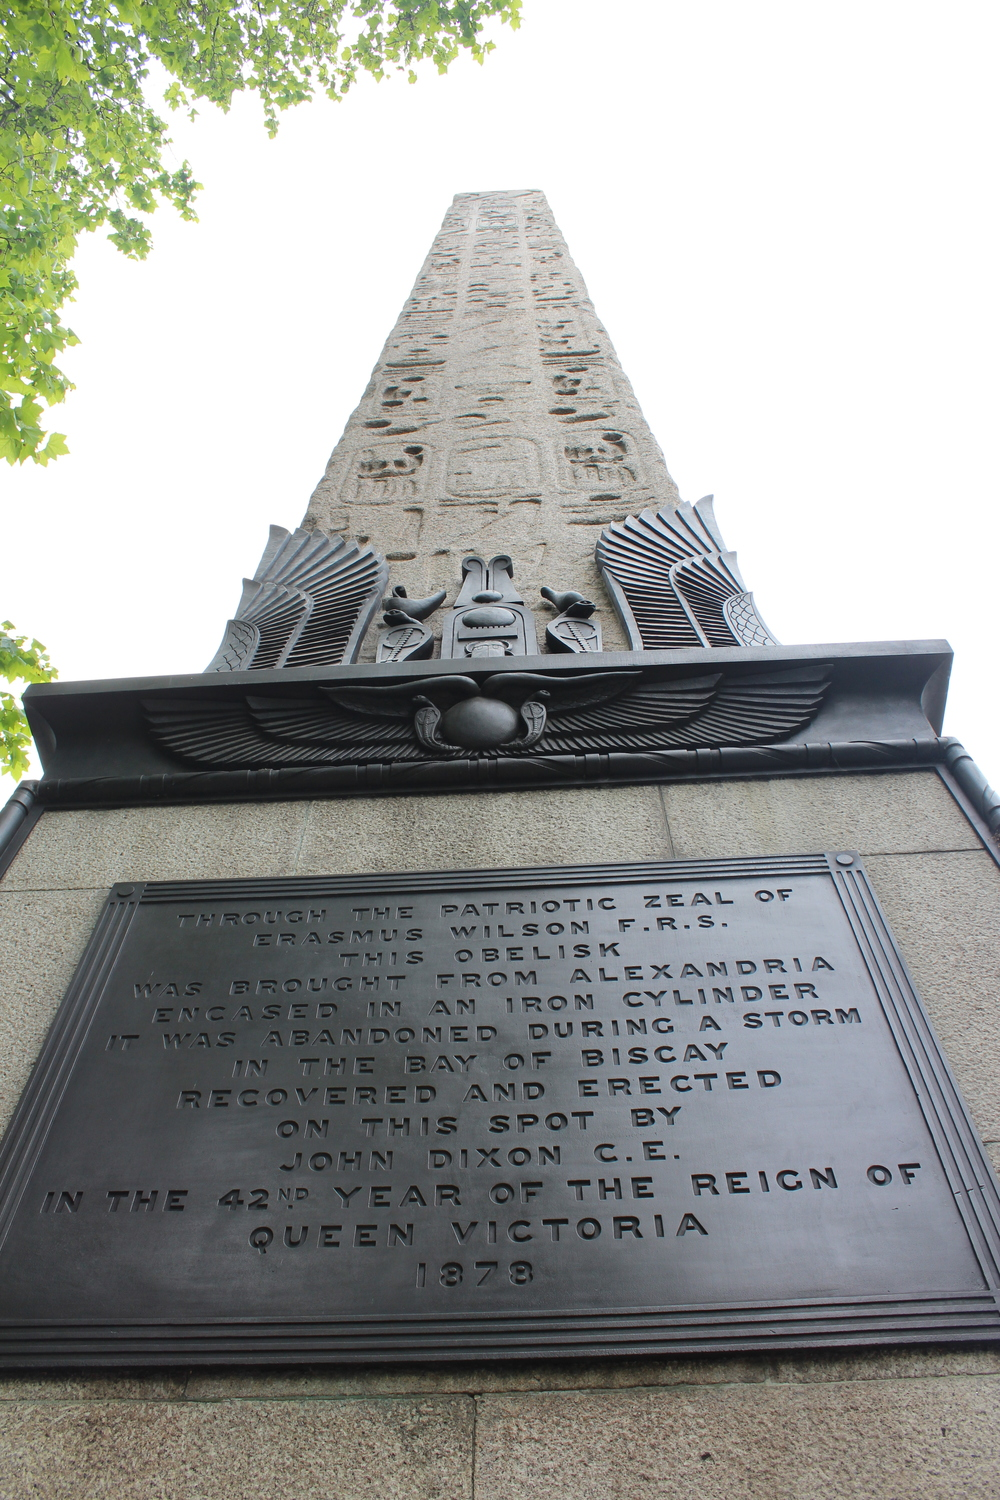 Cleopatra's needle. There are also Egyptian obelisks in New York and Paris :0